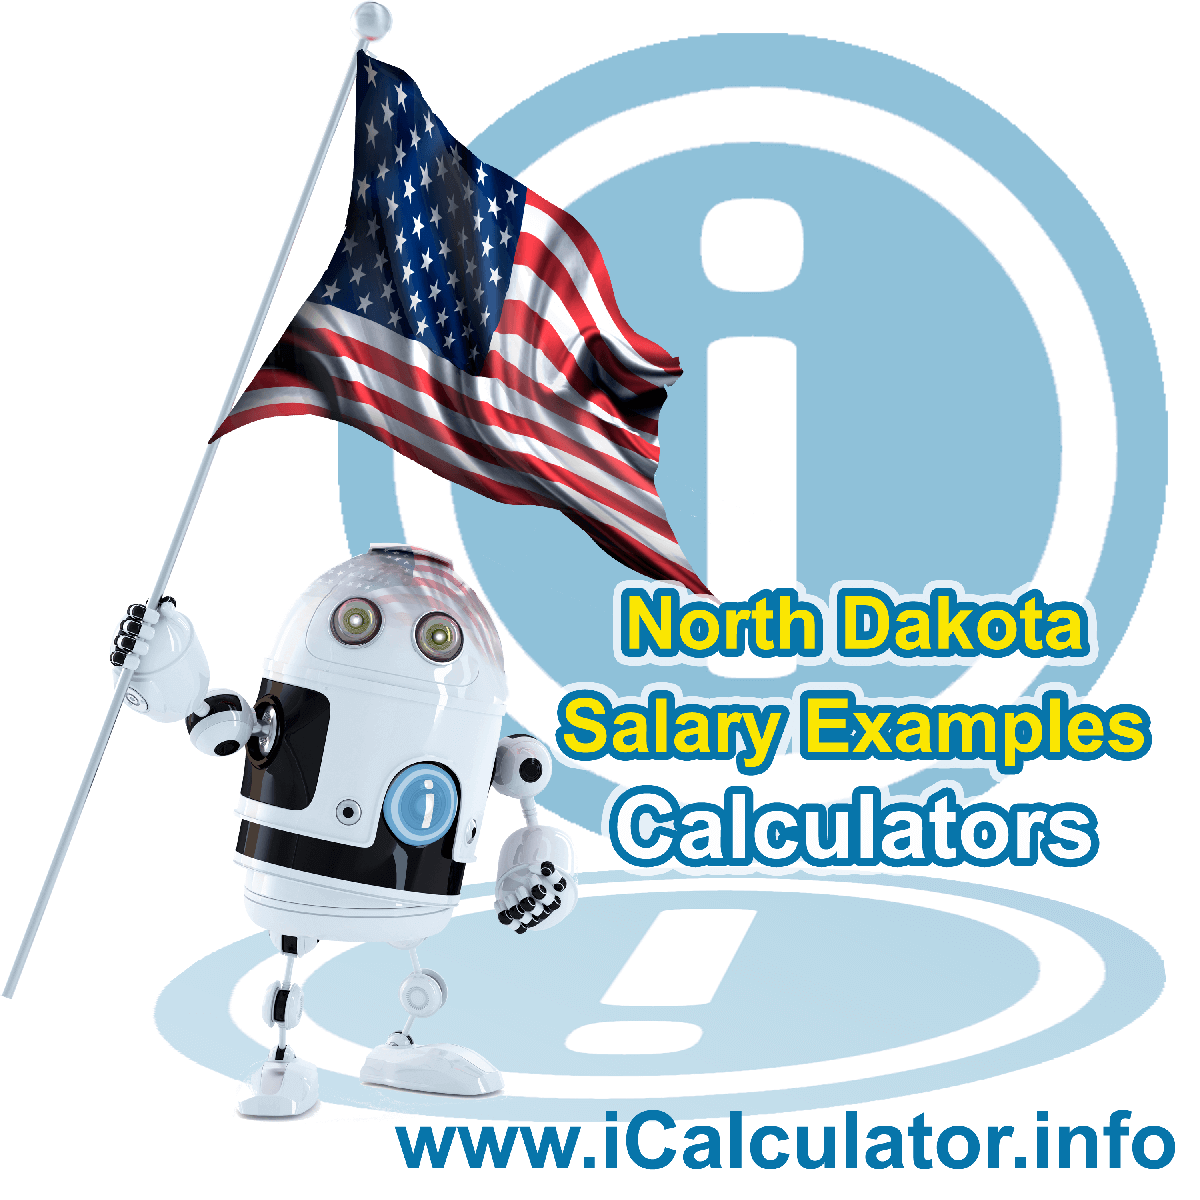 North Dakota Salary Example for $300.00 in 2021 | iCalculator™ | $300.00 salary example for employee and employer paying North Dakota State tincome taxes. Detailed salary after tax calculation including North Dakota State Tax, Federal State Tax, Medicare Deductions, Social Security, Capital Gains and other income tax and salary deductions complete with supporting North Dakota state tax tables